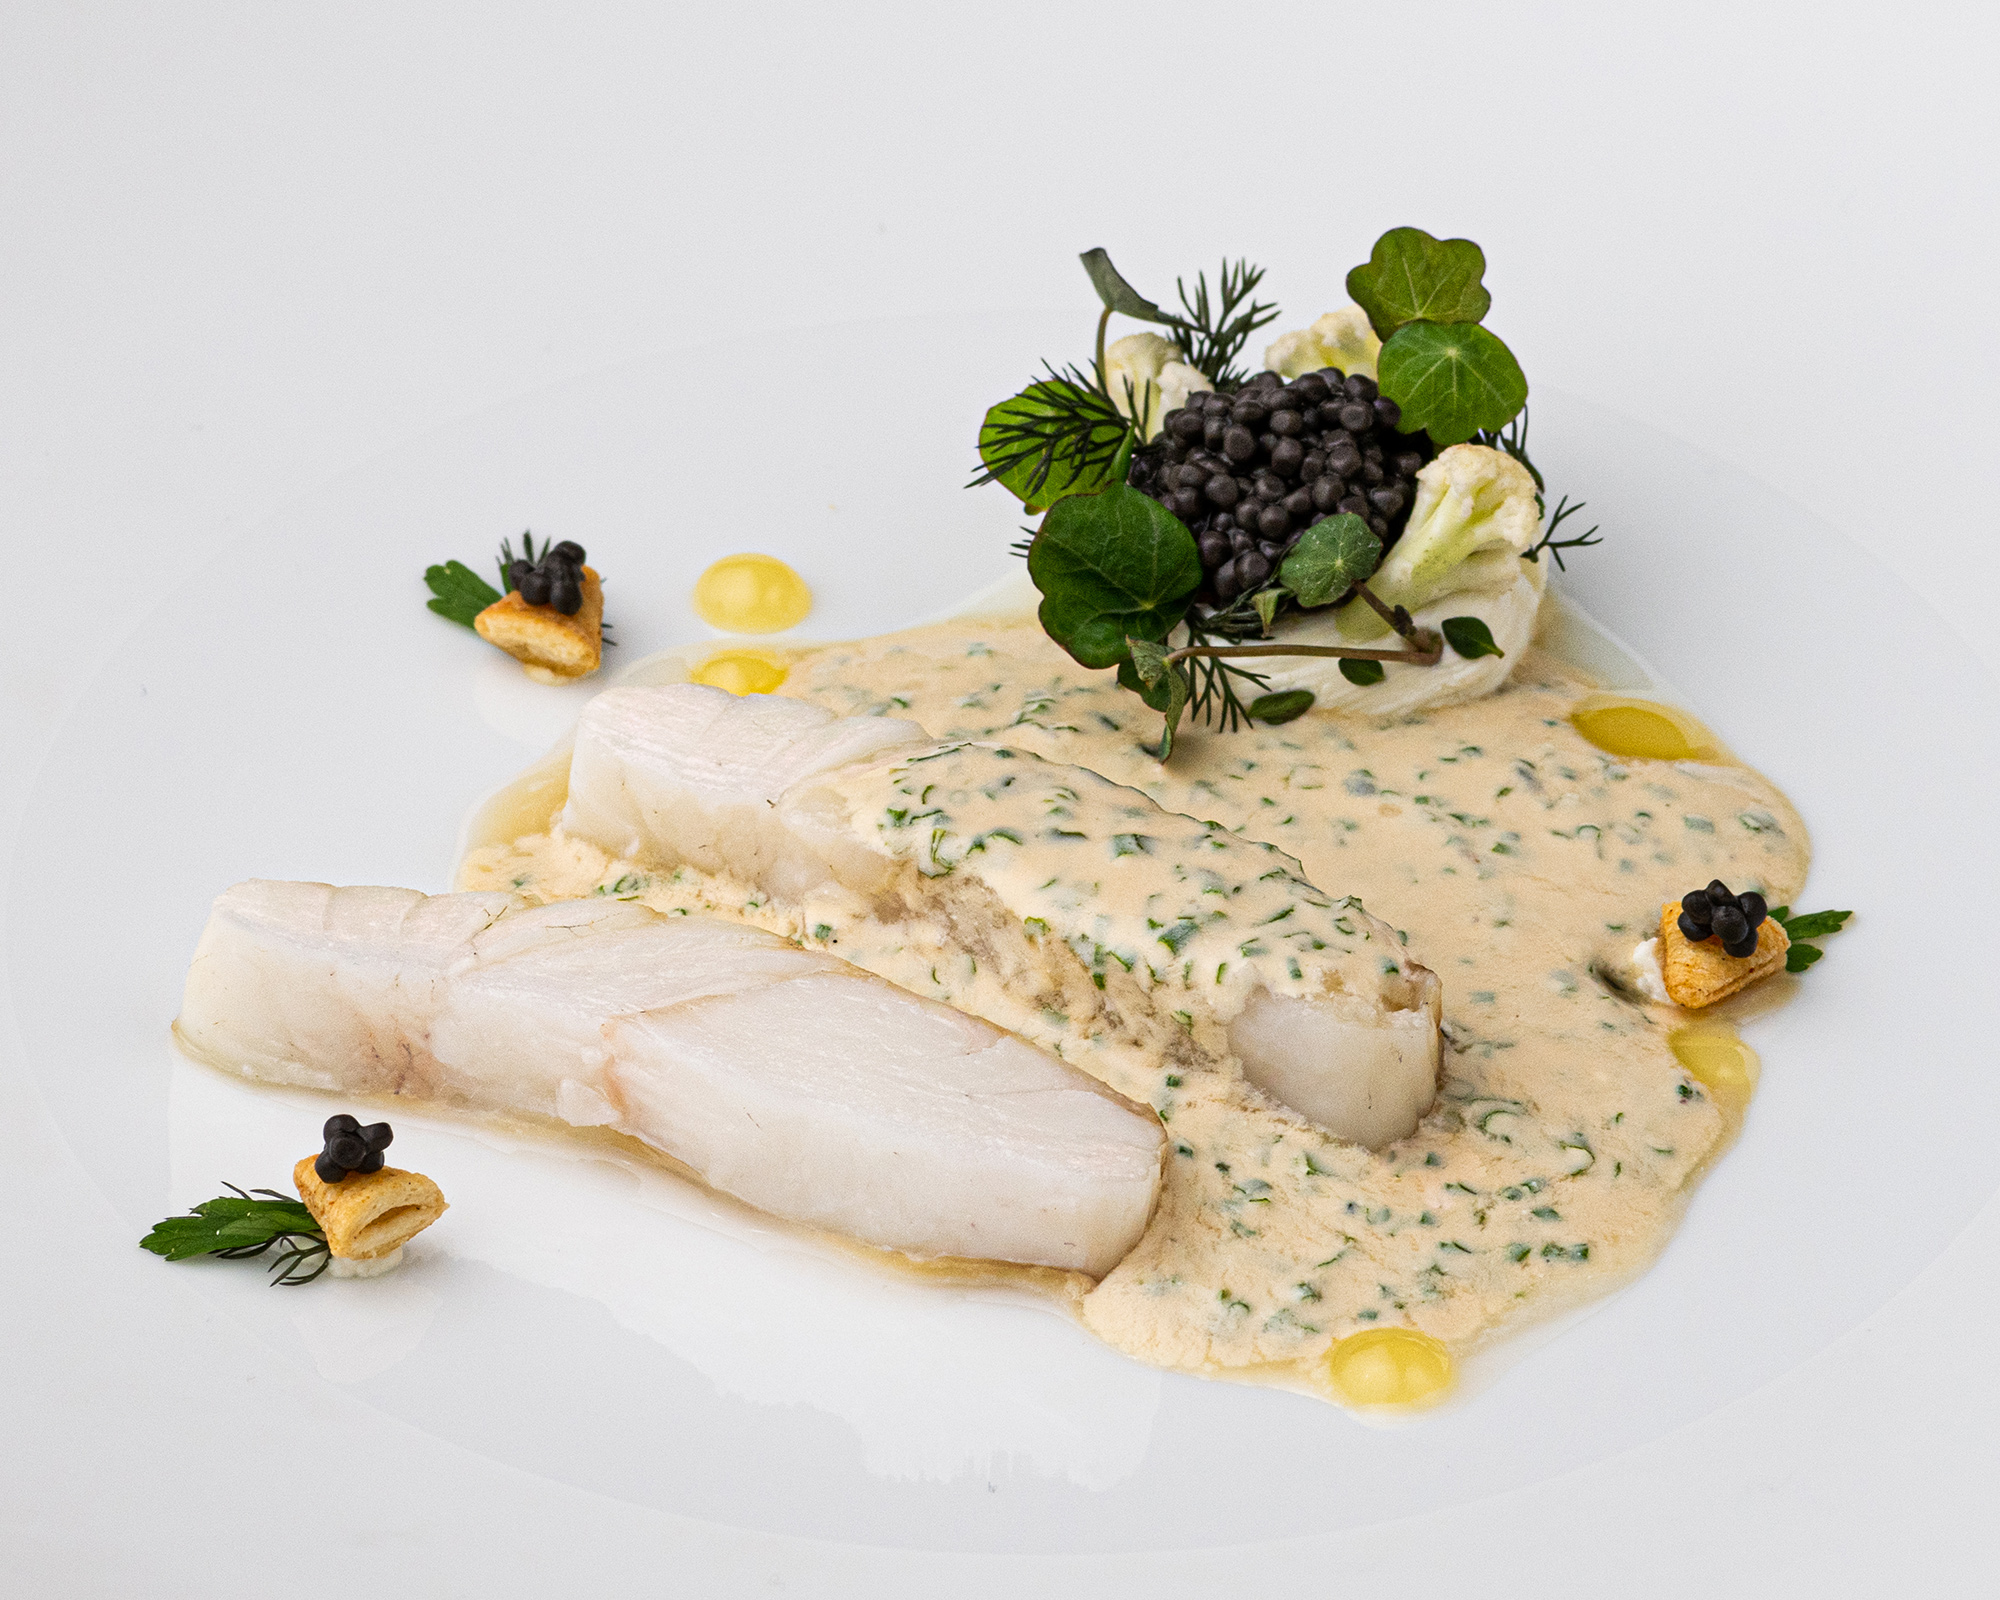 The food at Oxeye promises to be exciting and delicious